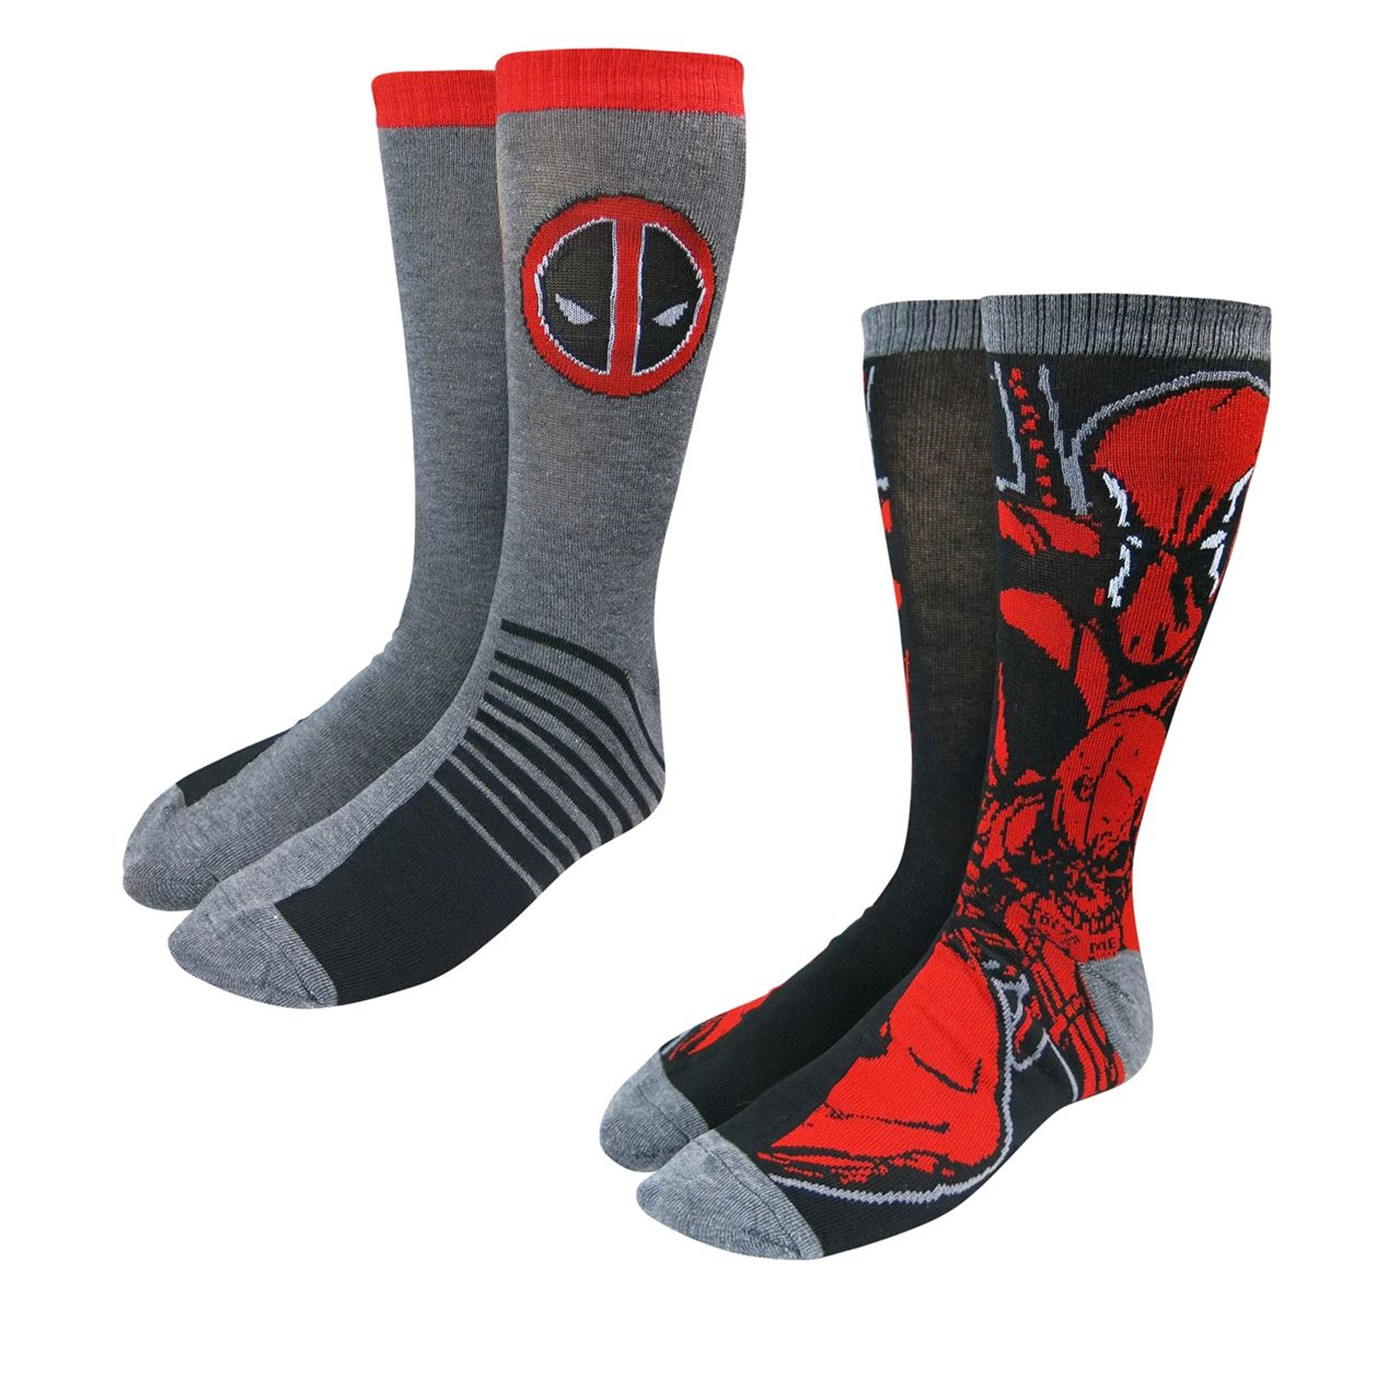 Deadpool Image and Symbol Sock 2 Pack